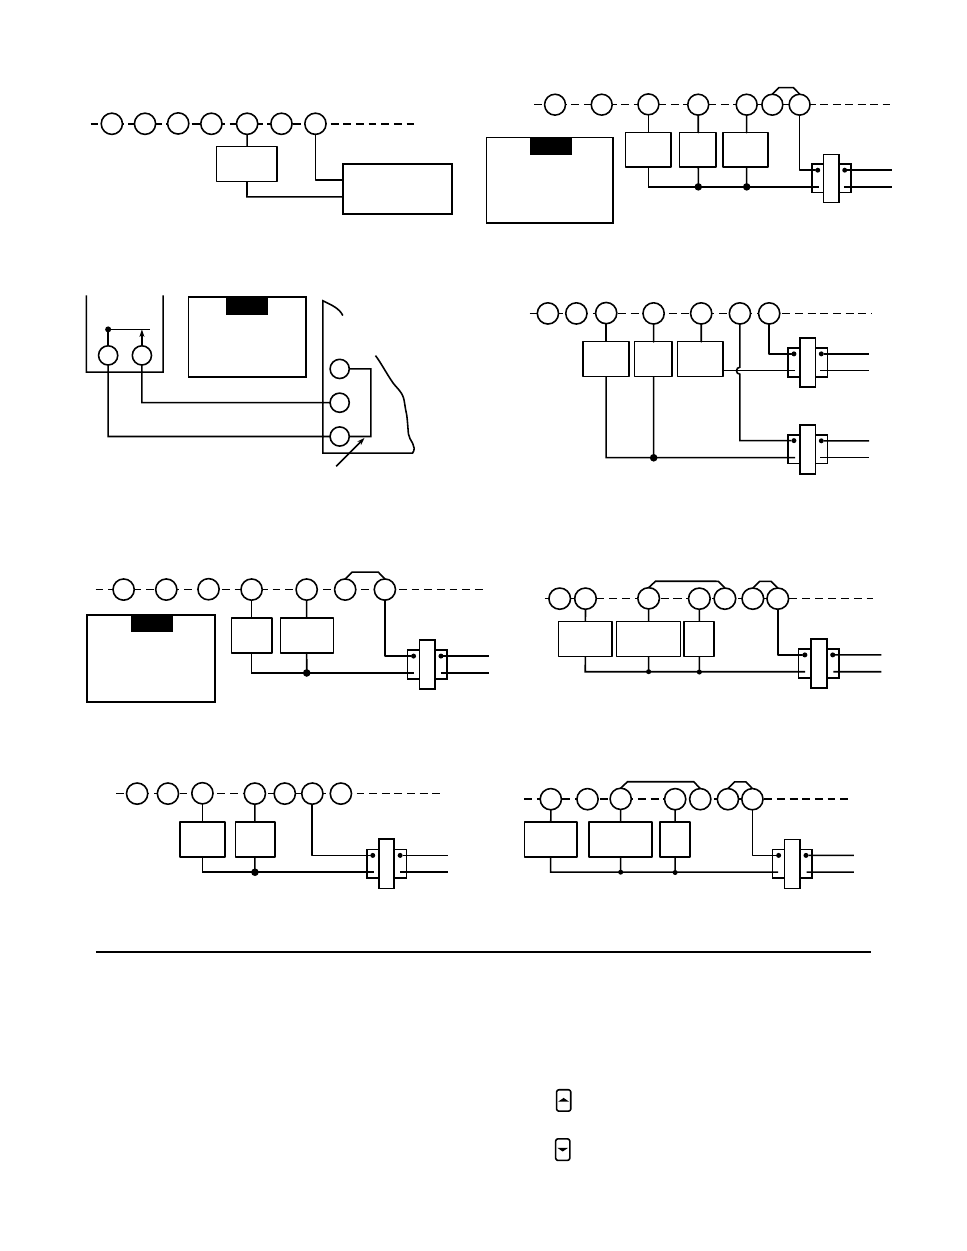 Diagram White Rodgers Thermostat 1f80 51 Wiring Diagram